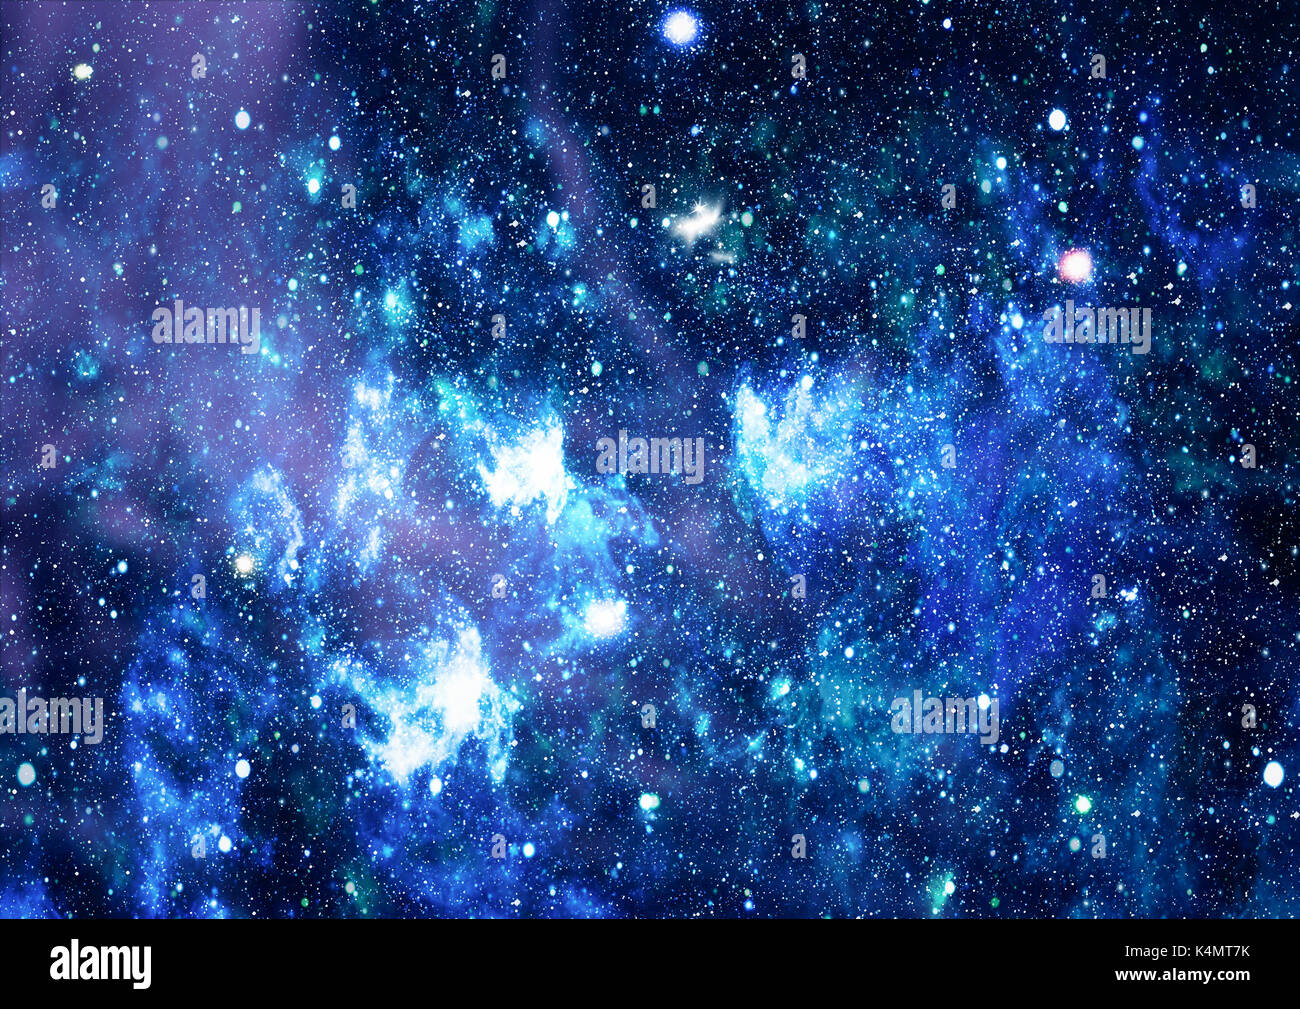 Deep space. High definition star field background . Starry outer space background texture . Colorful Starry Night Sky Outer Space background - Stock Image